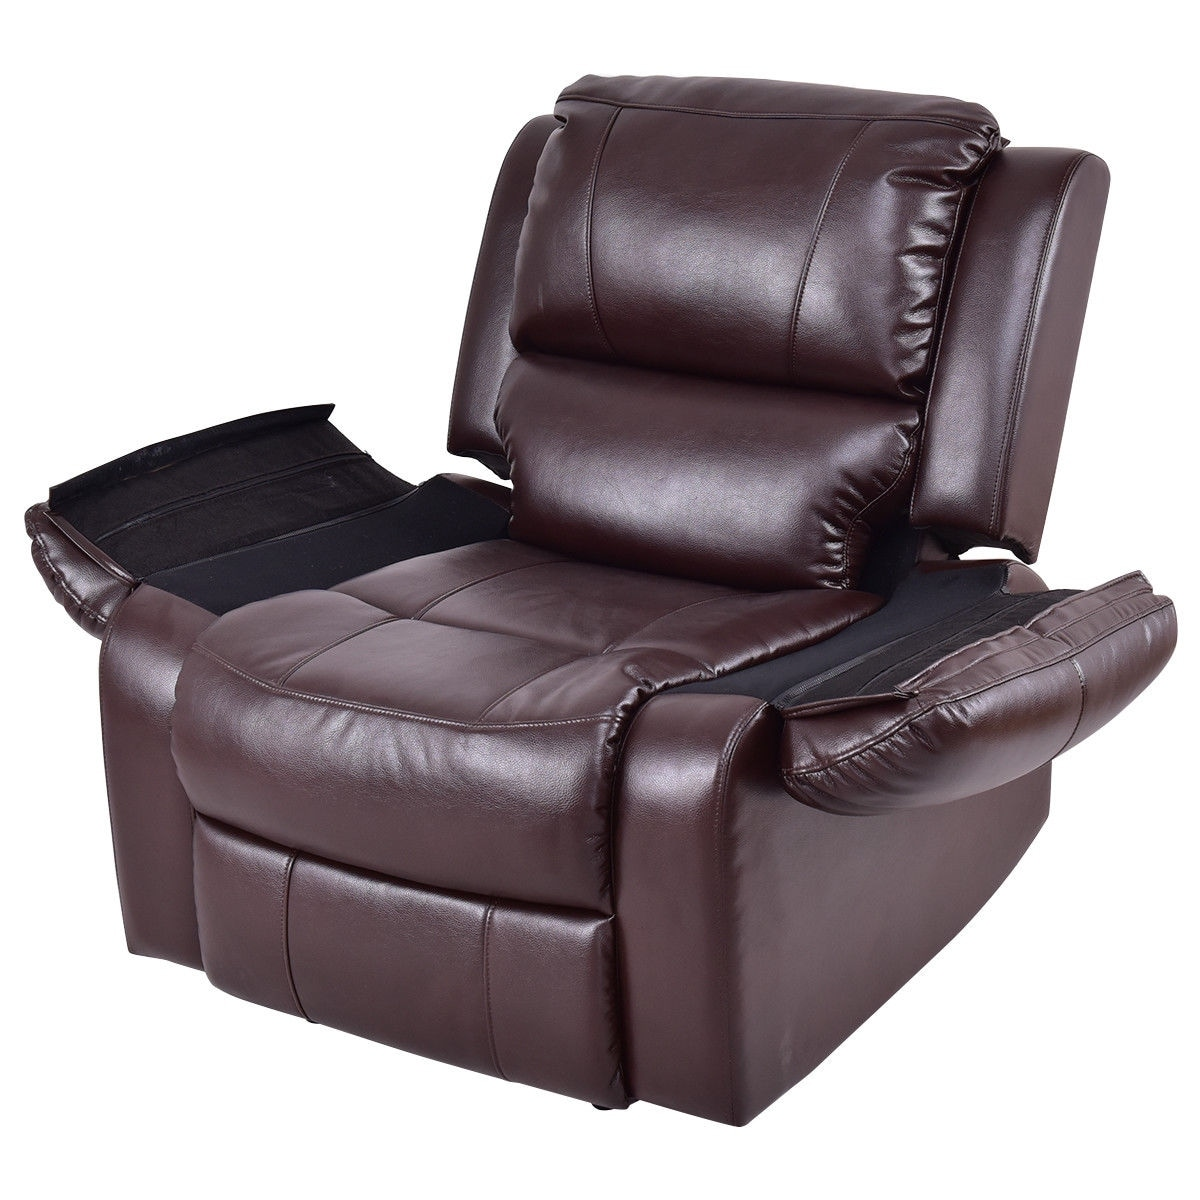 shop costway manual recliner sofa lounge chair pu leather home